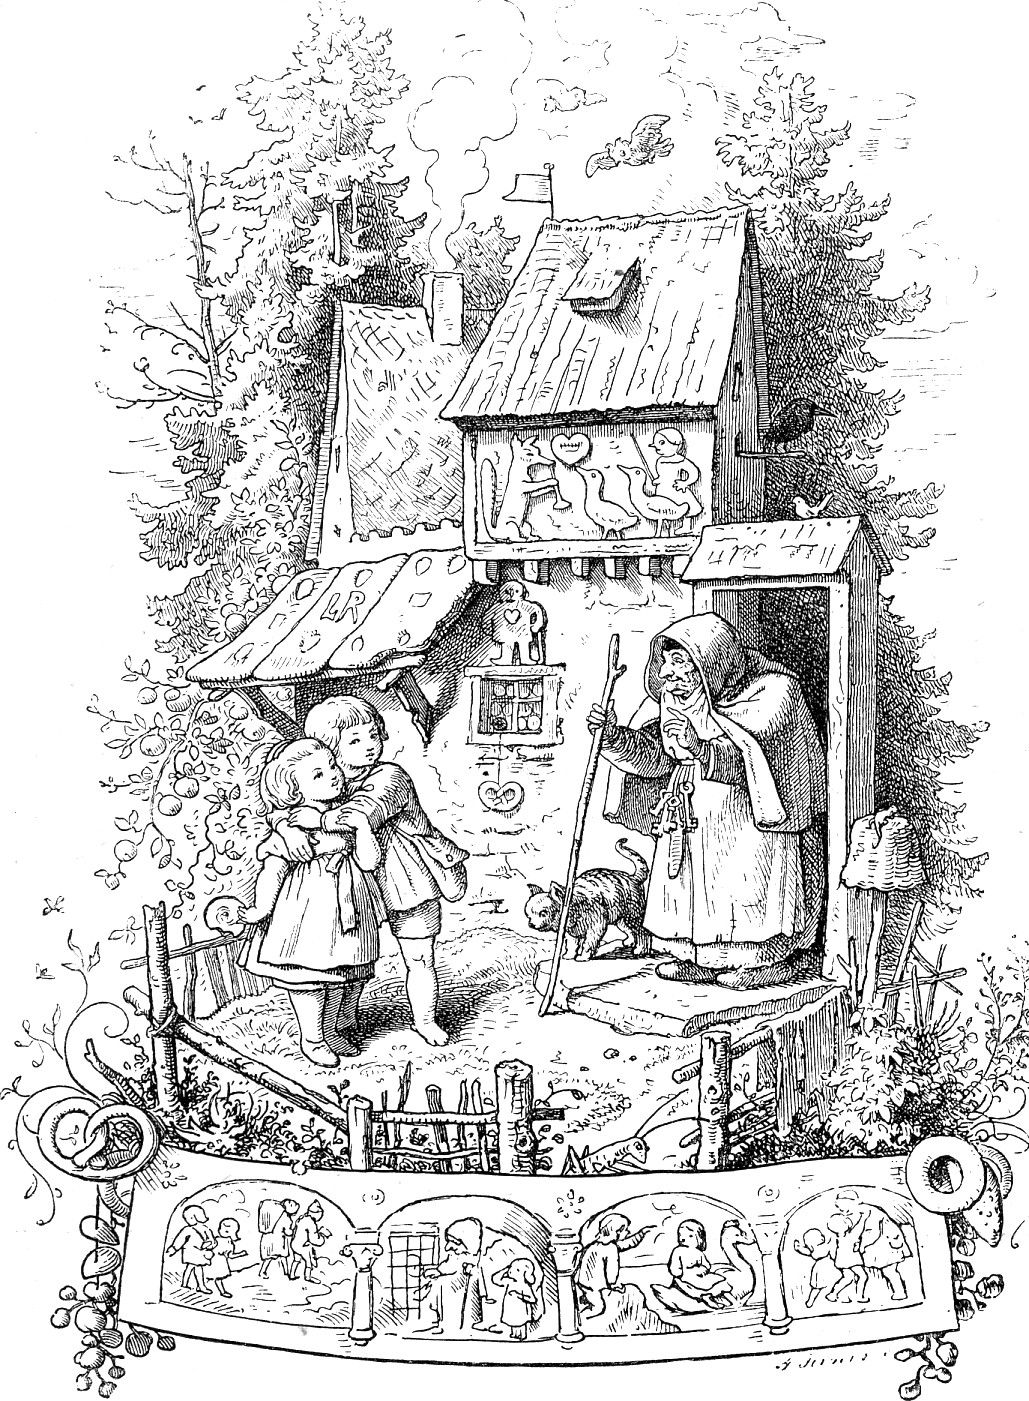 Hansel and Gretel ~ Ludwig Richter 1800s | Hansel and Gretel ...